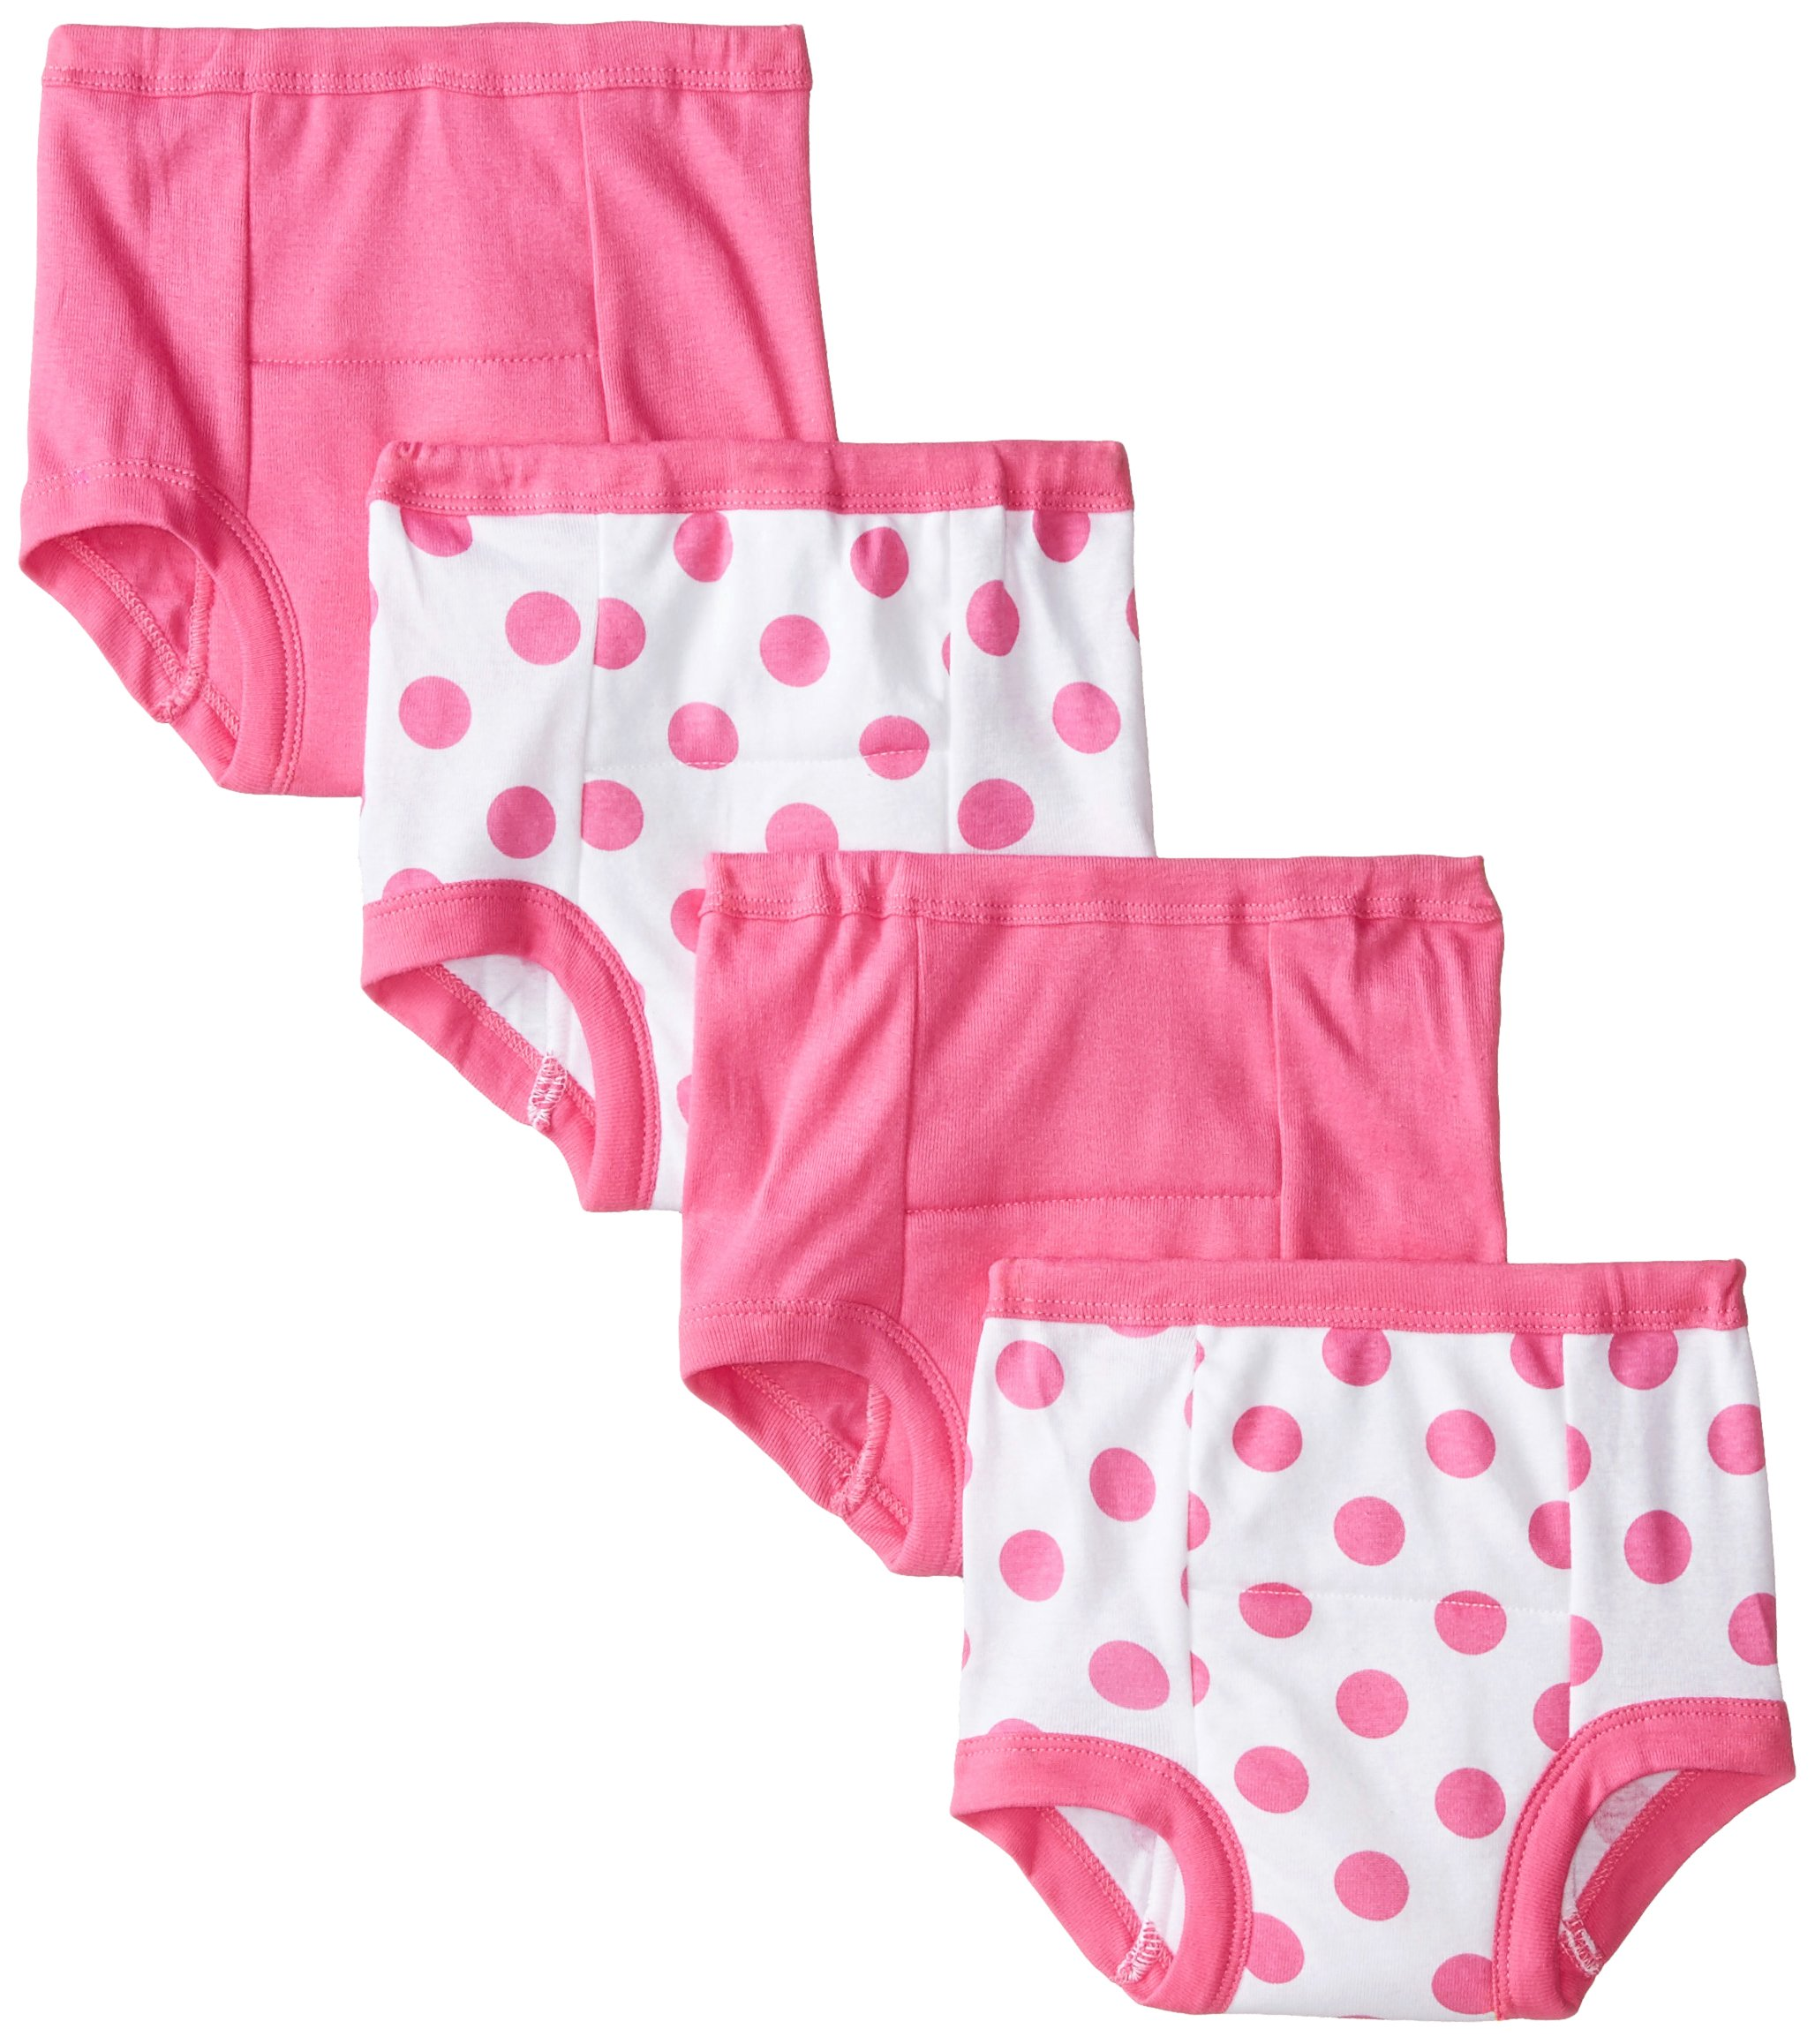 Gerber Little Girls 4 Pack Training Pant